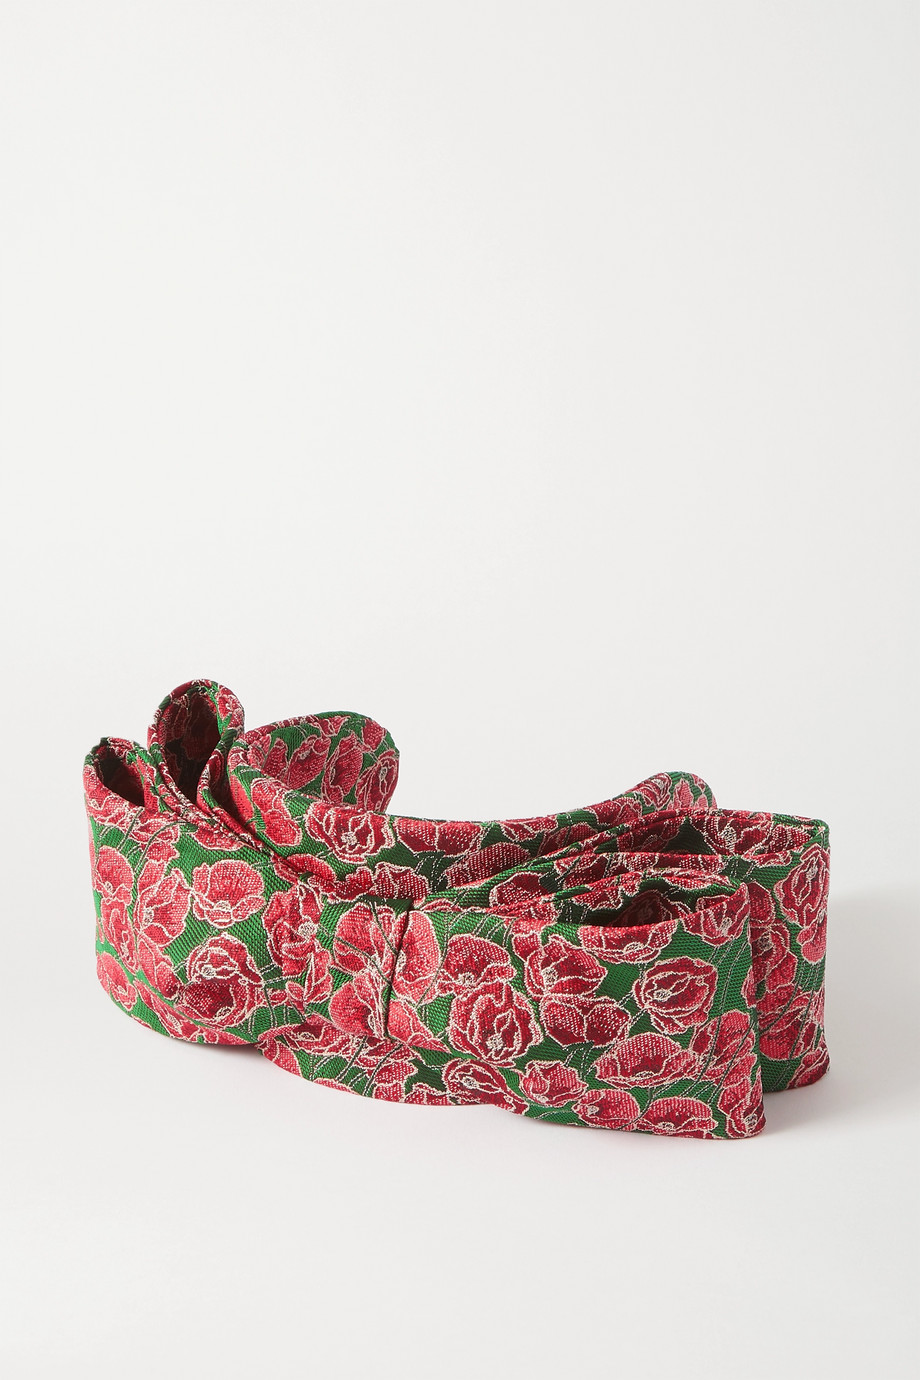 PRUDENCE MILLINERY Bow-detailed metallic floral-brocade headband